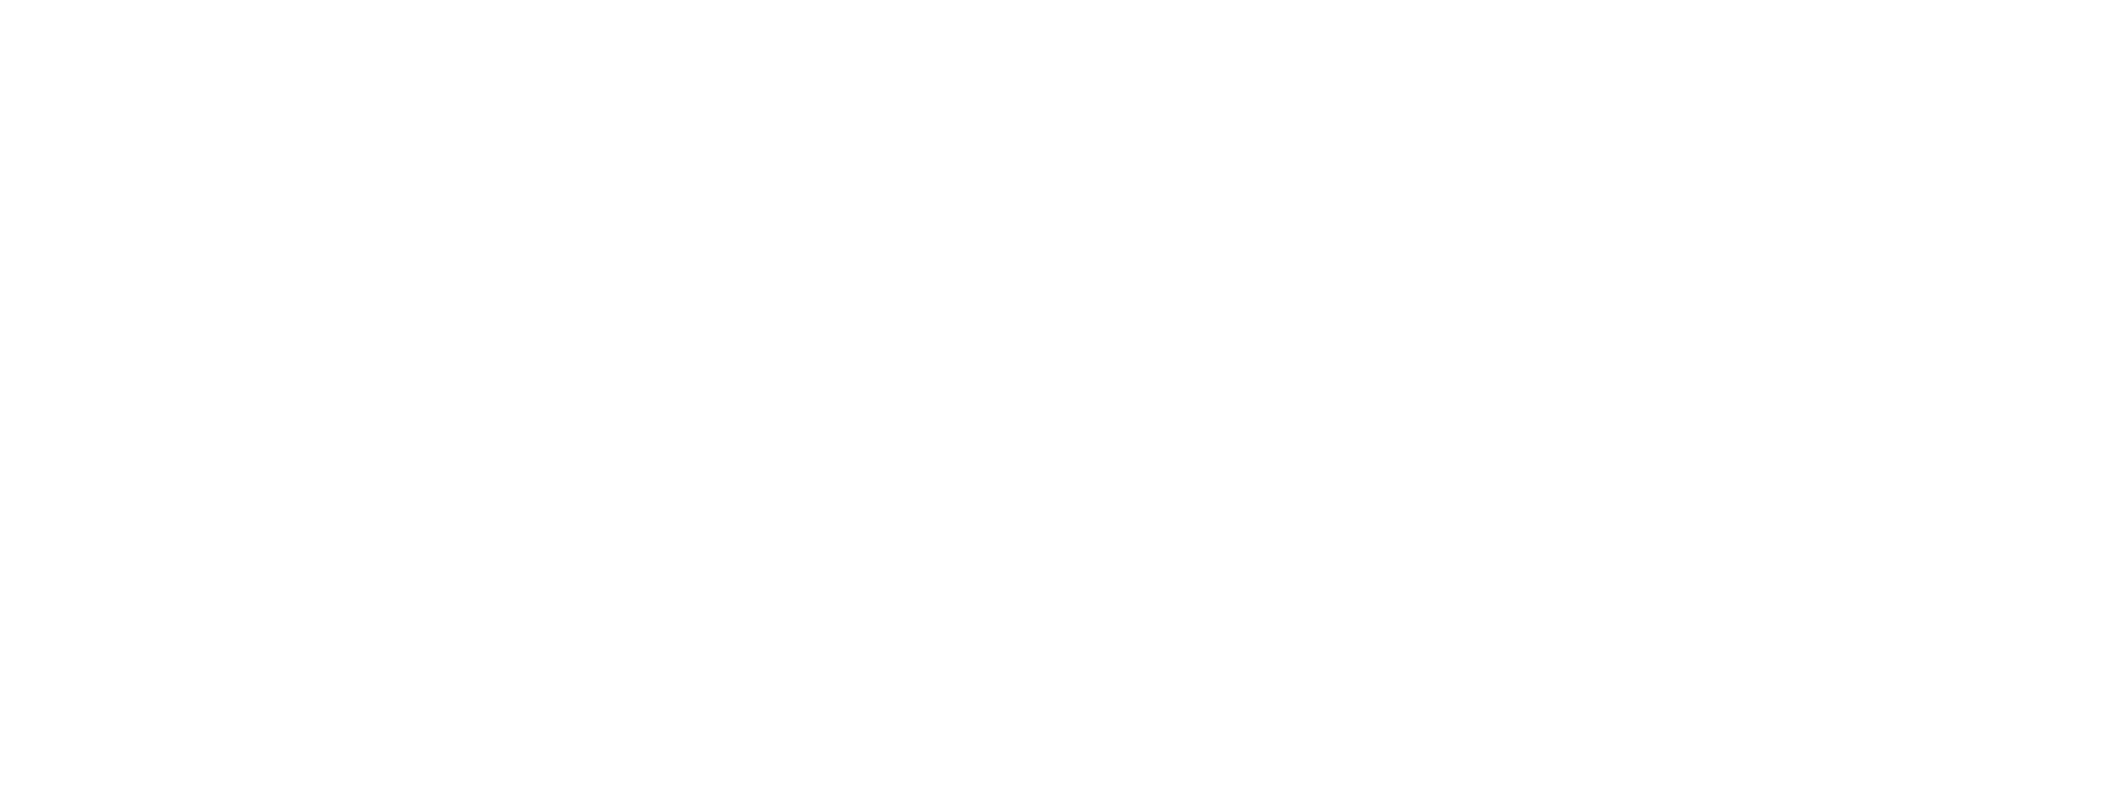 Market Scientist